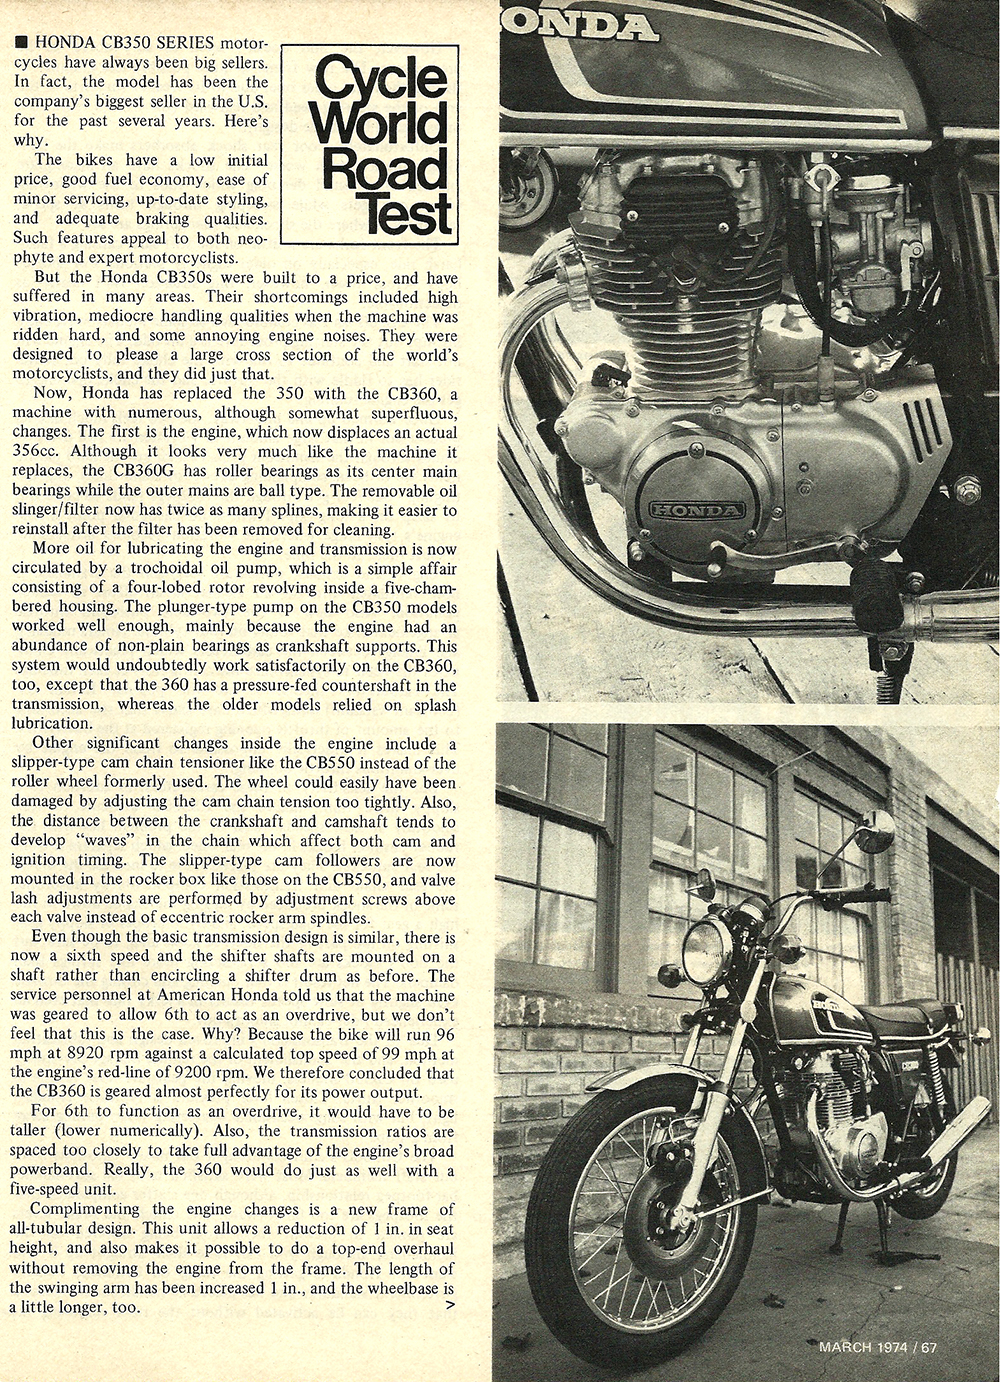 1974 Honda CB360G road test 2.jpg